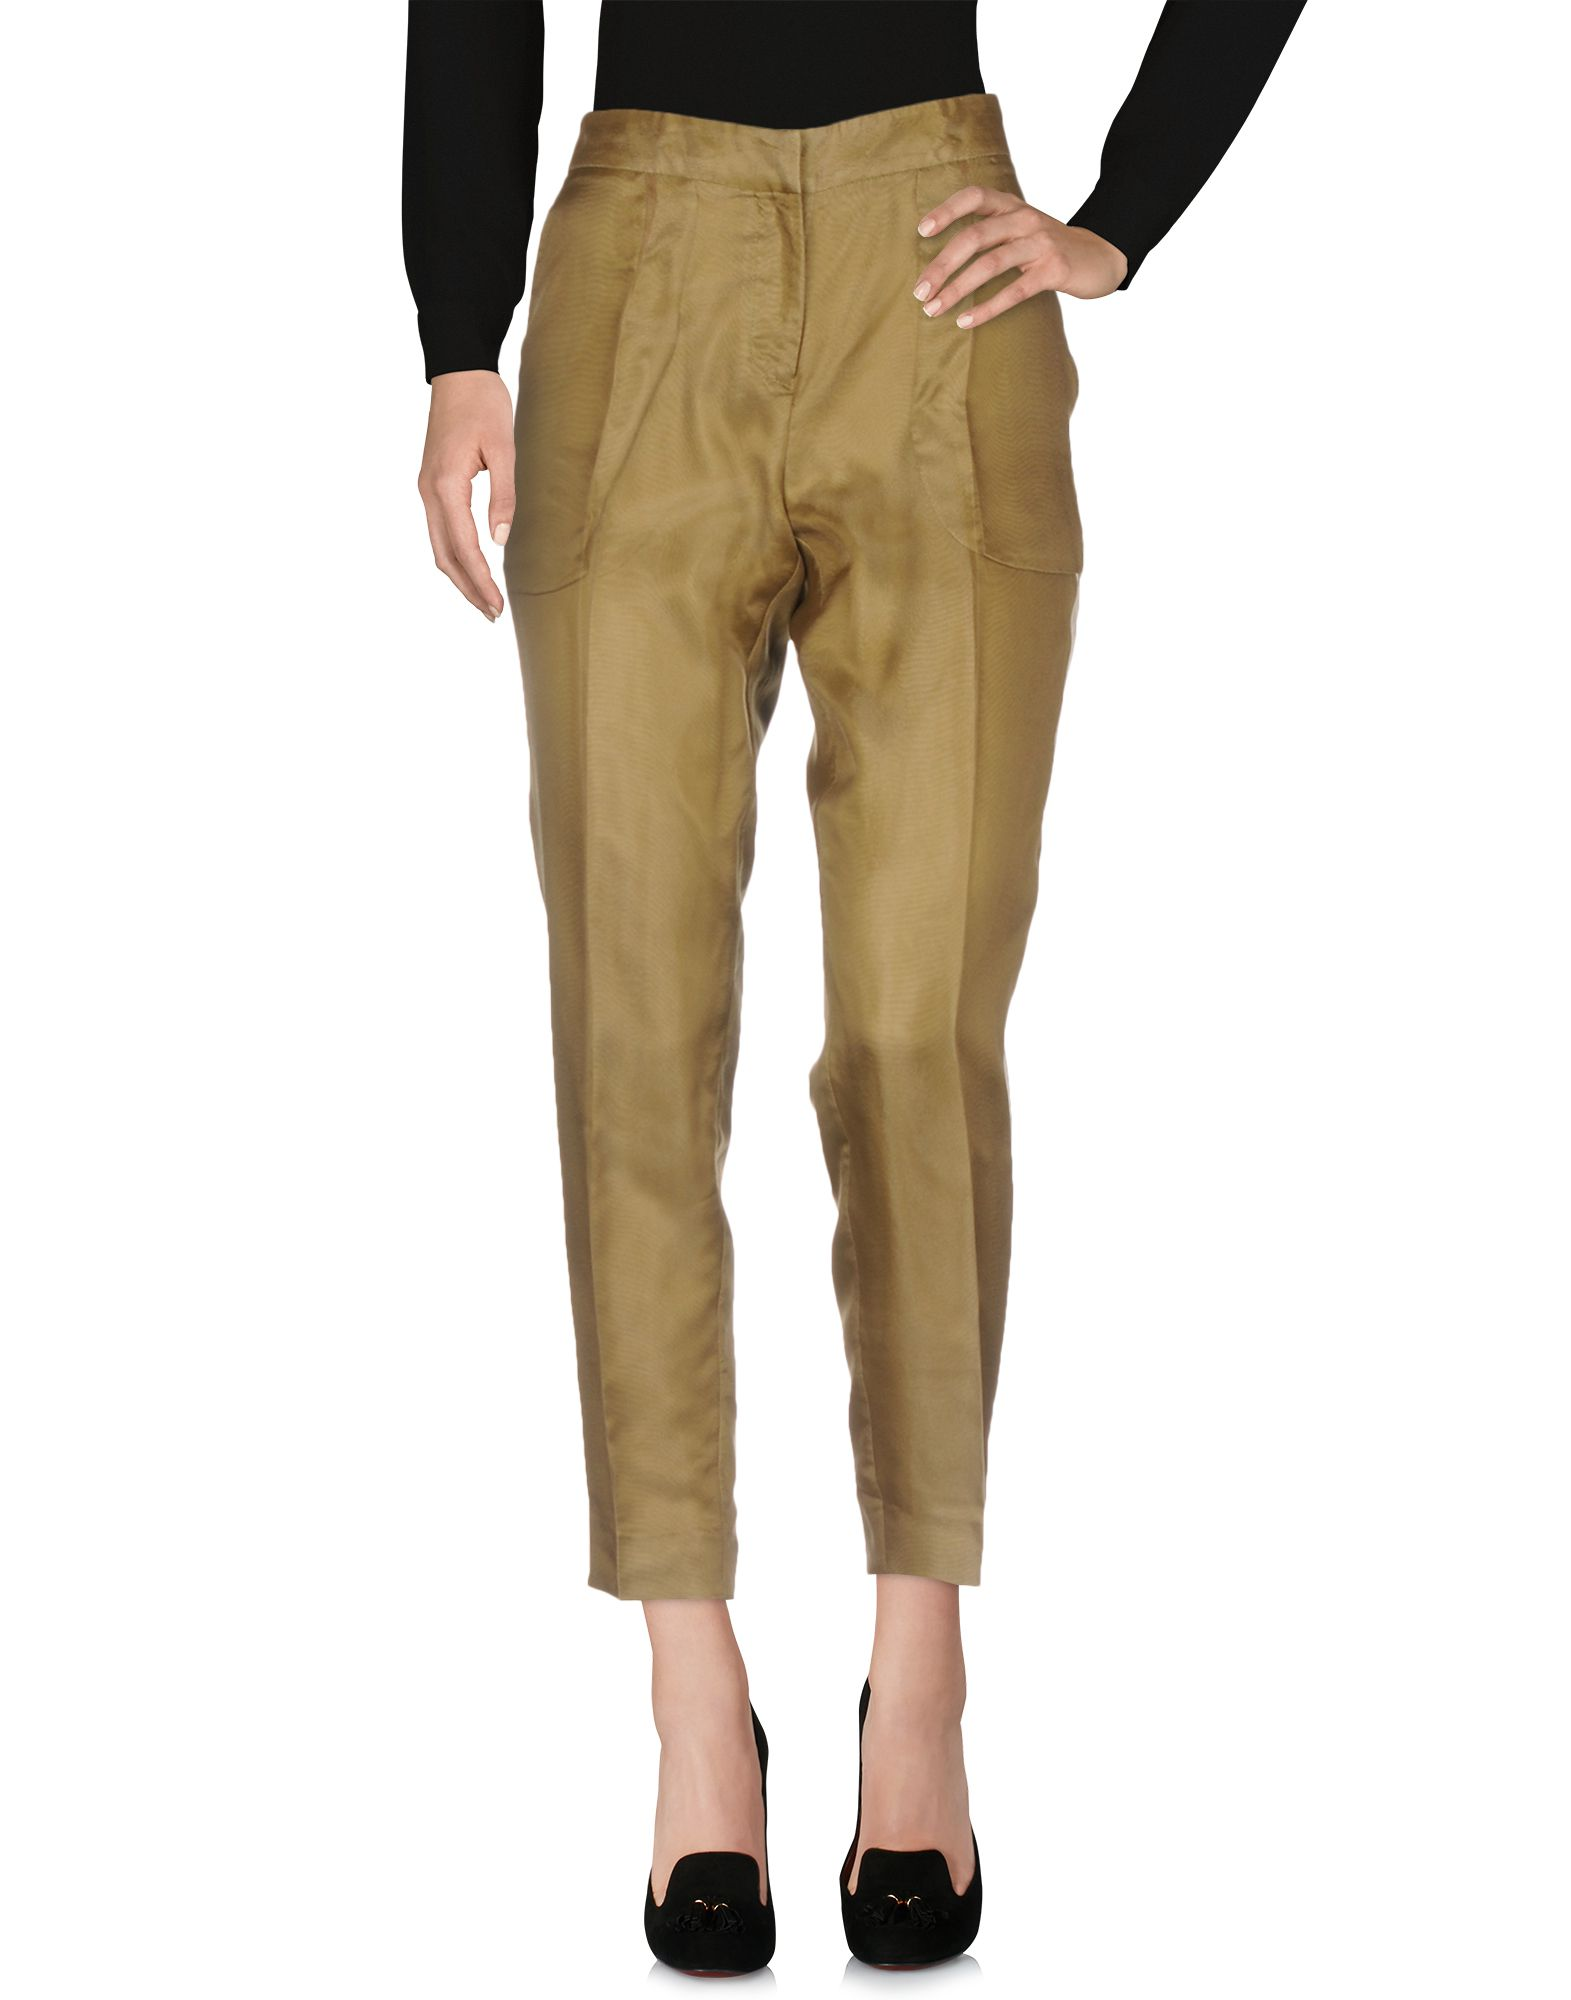 MOSCHINO CHEAP AND CHIC Casual Pants in Military Green